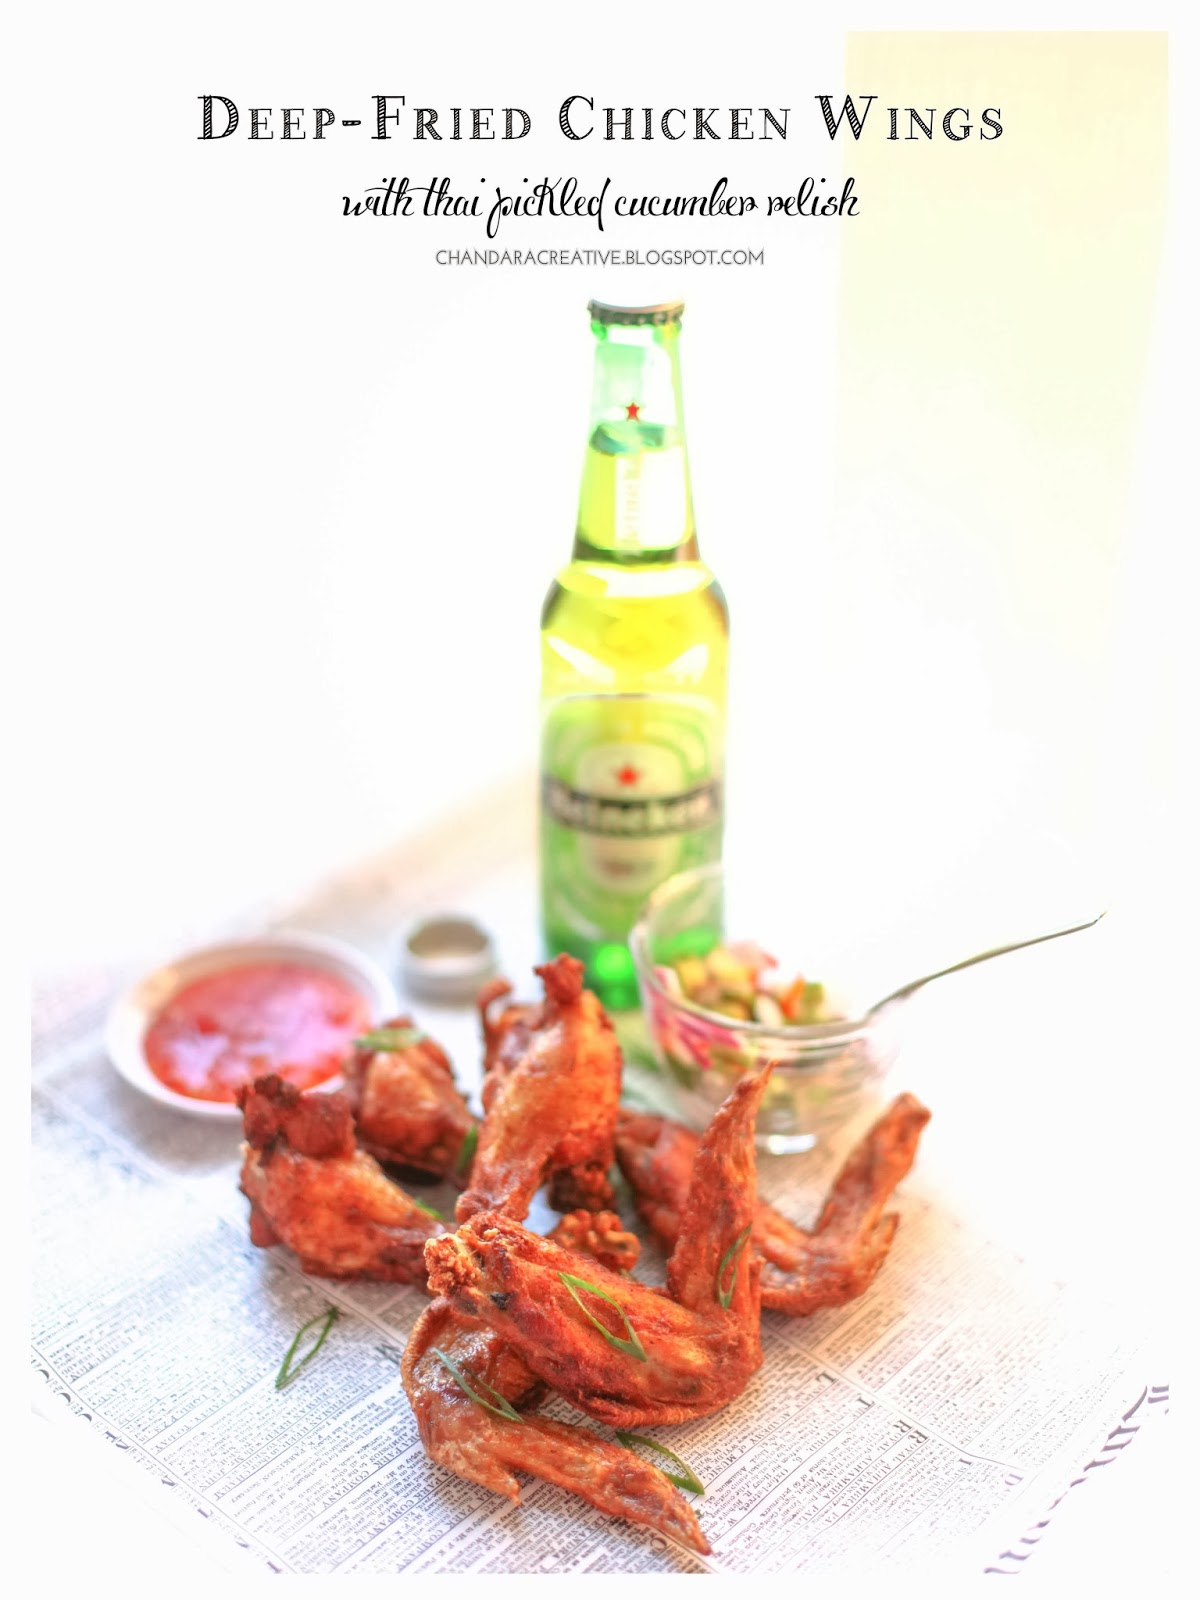 Deep-Fried Chicken Wings with Thai Pickled Cucumber Relish | via Chandara Creative